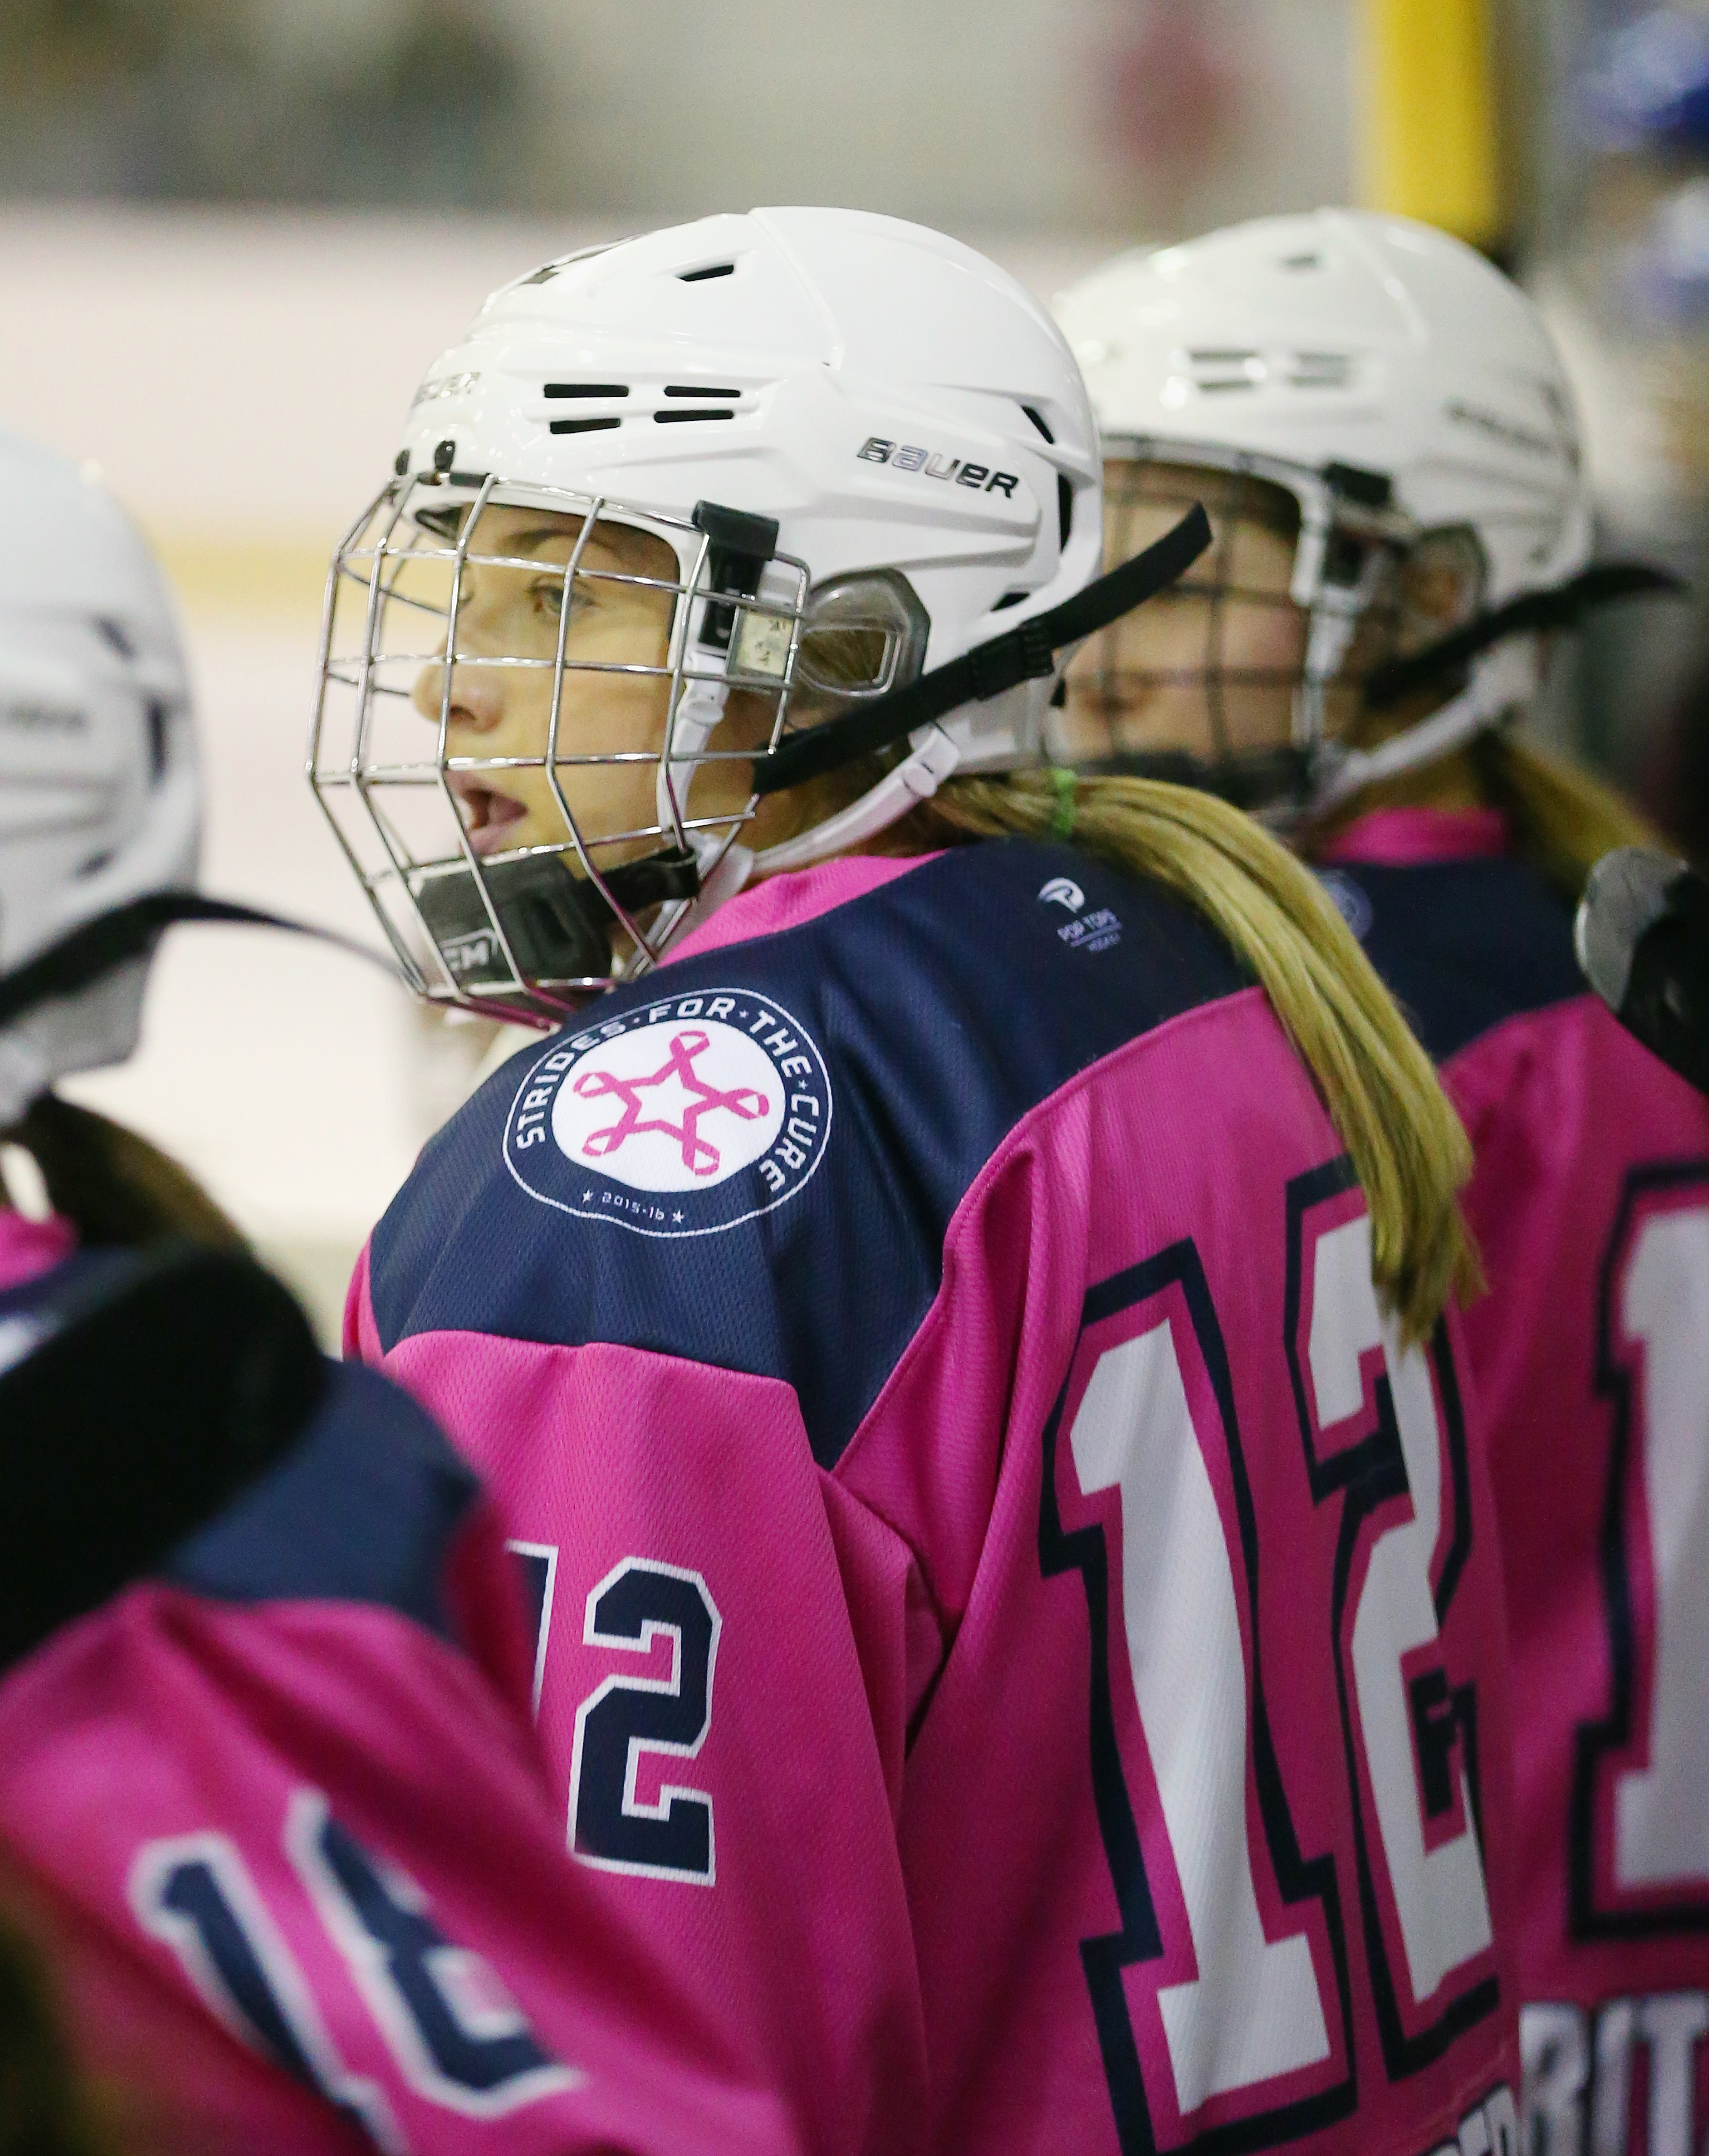 A Day In The Life Of The New York Riveters Women's Hockey Team